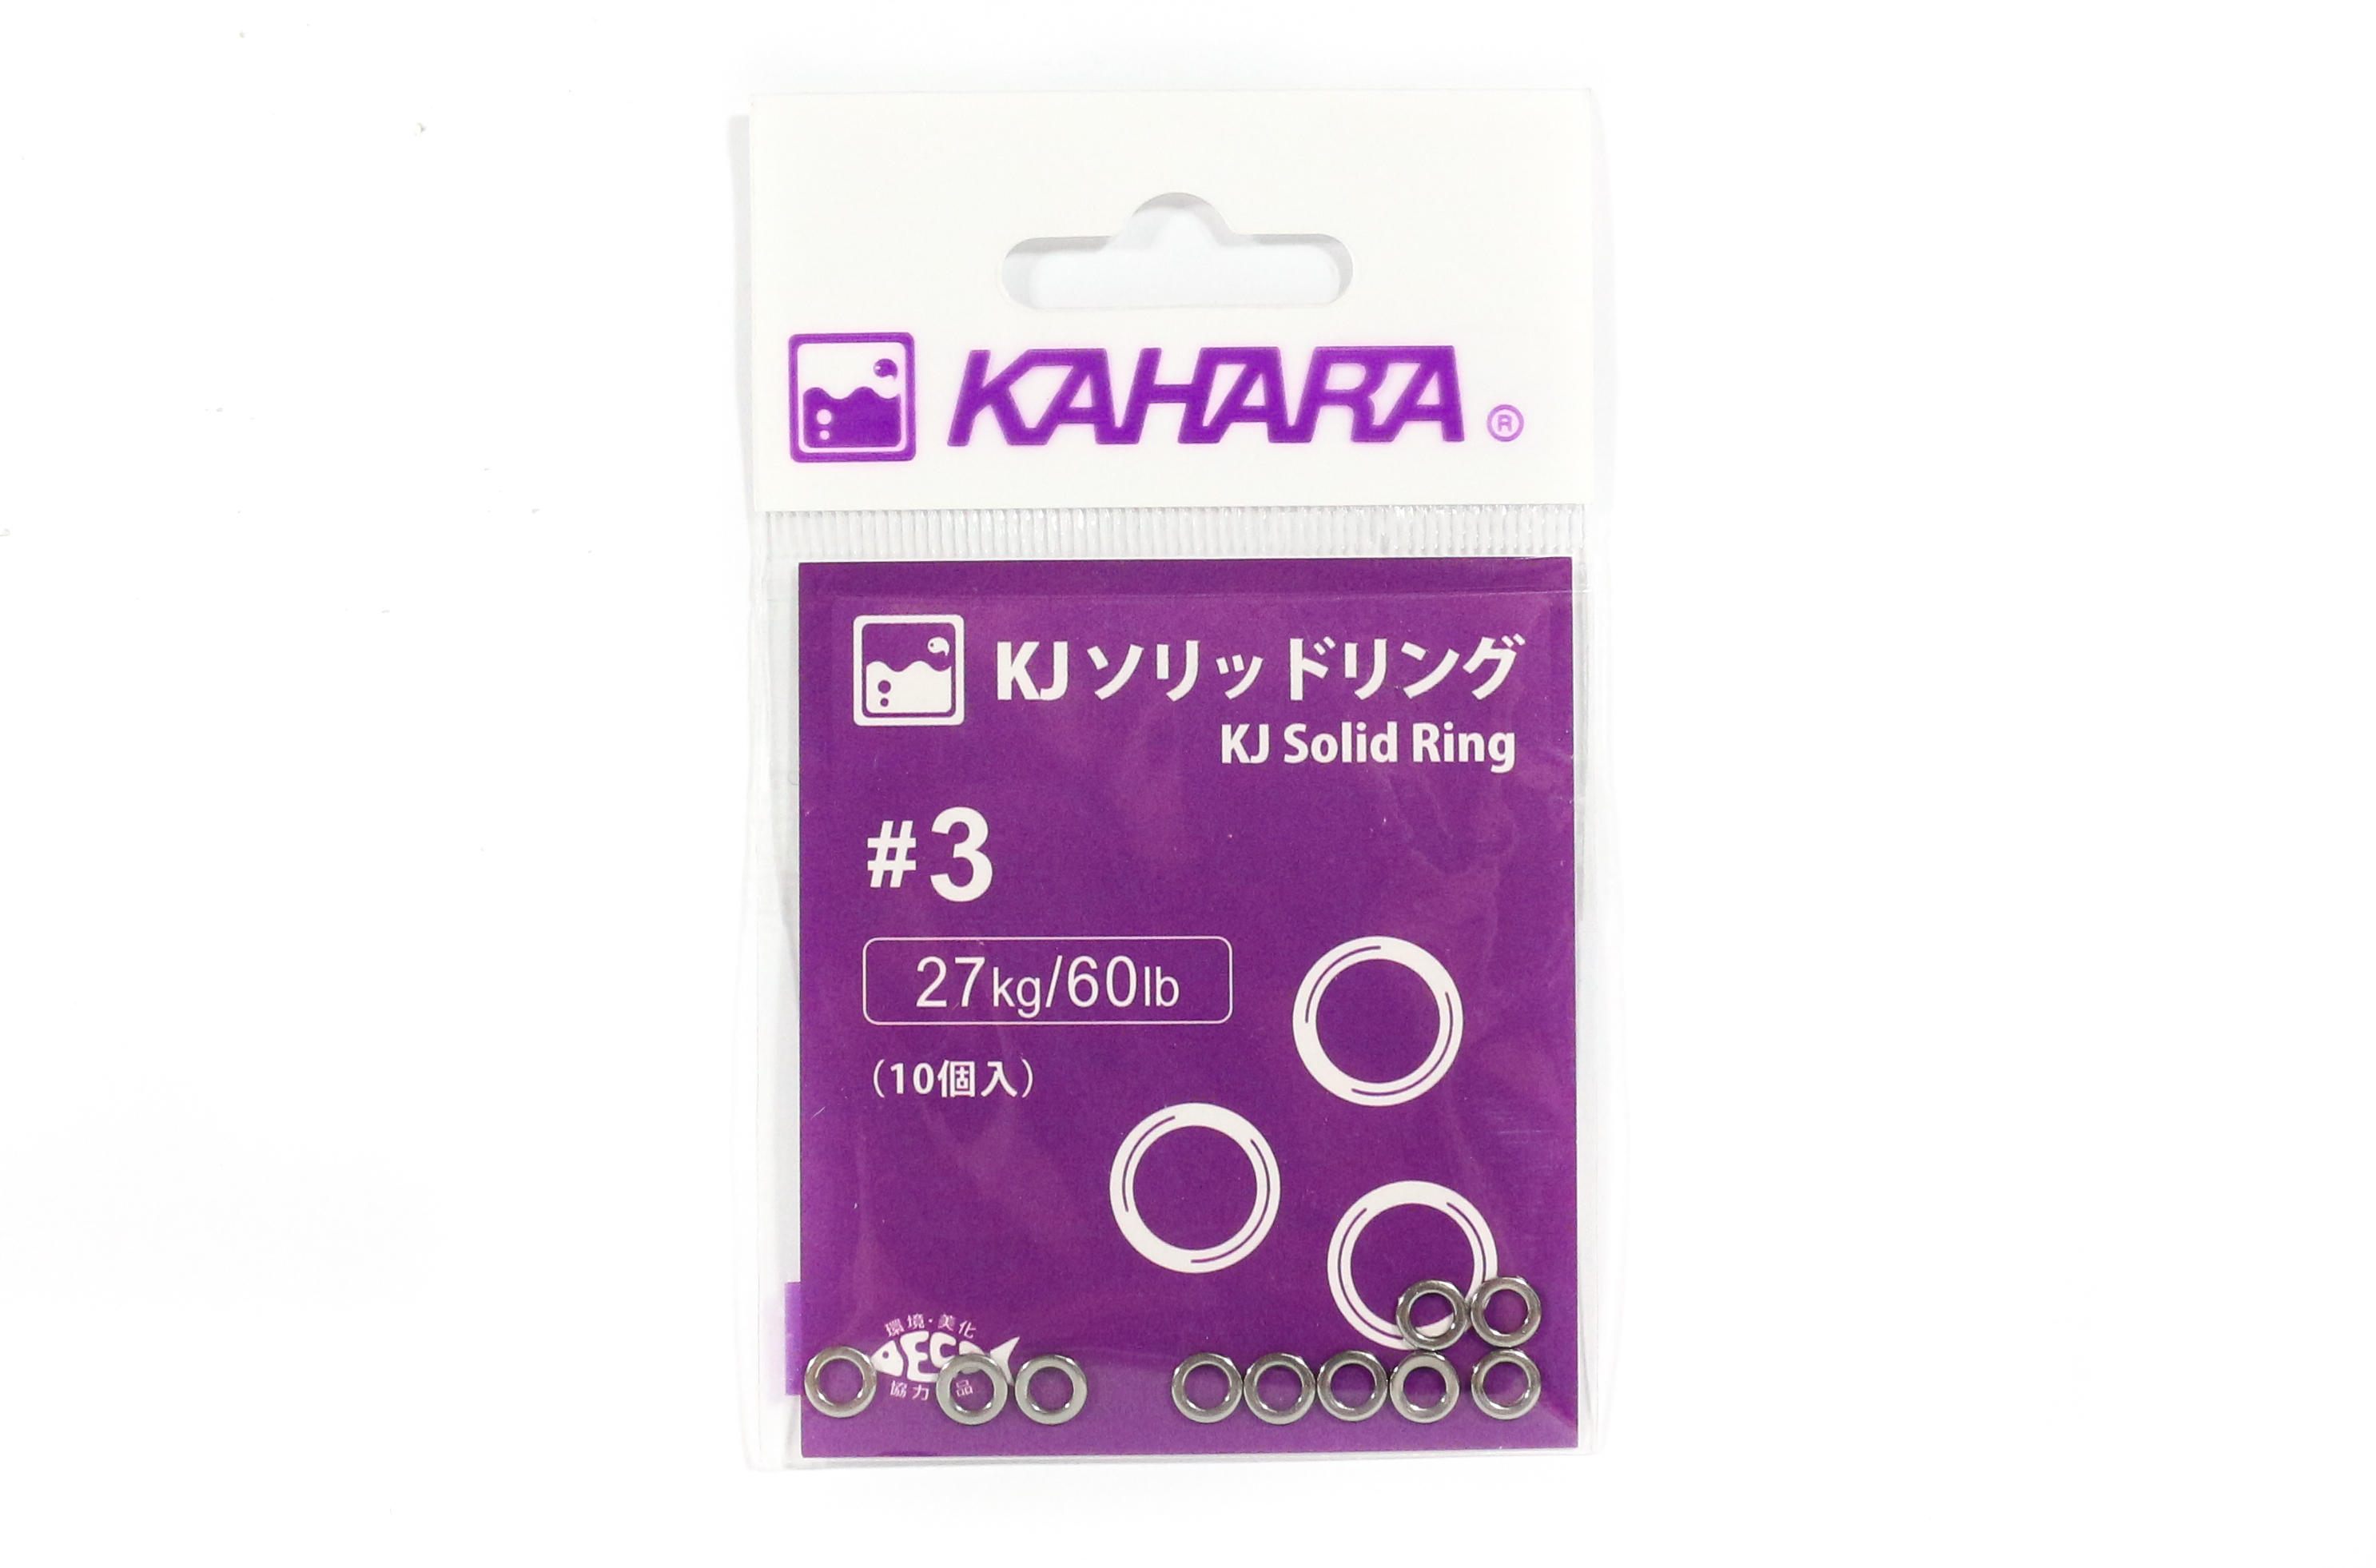 Kahara Solid Rings Stainless Steel Size 3 - 60lb (5671)